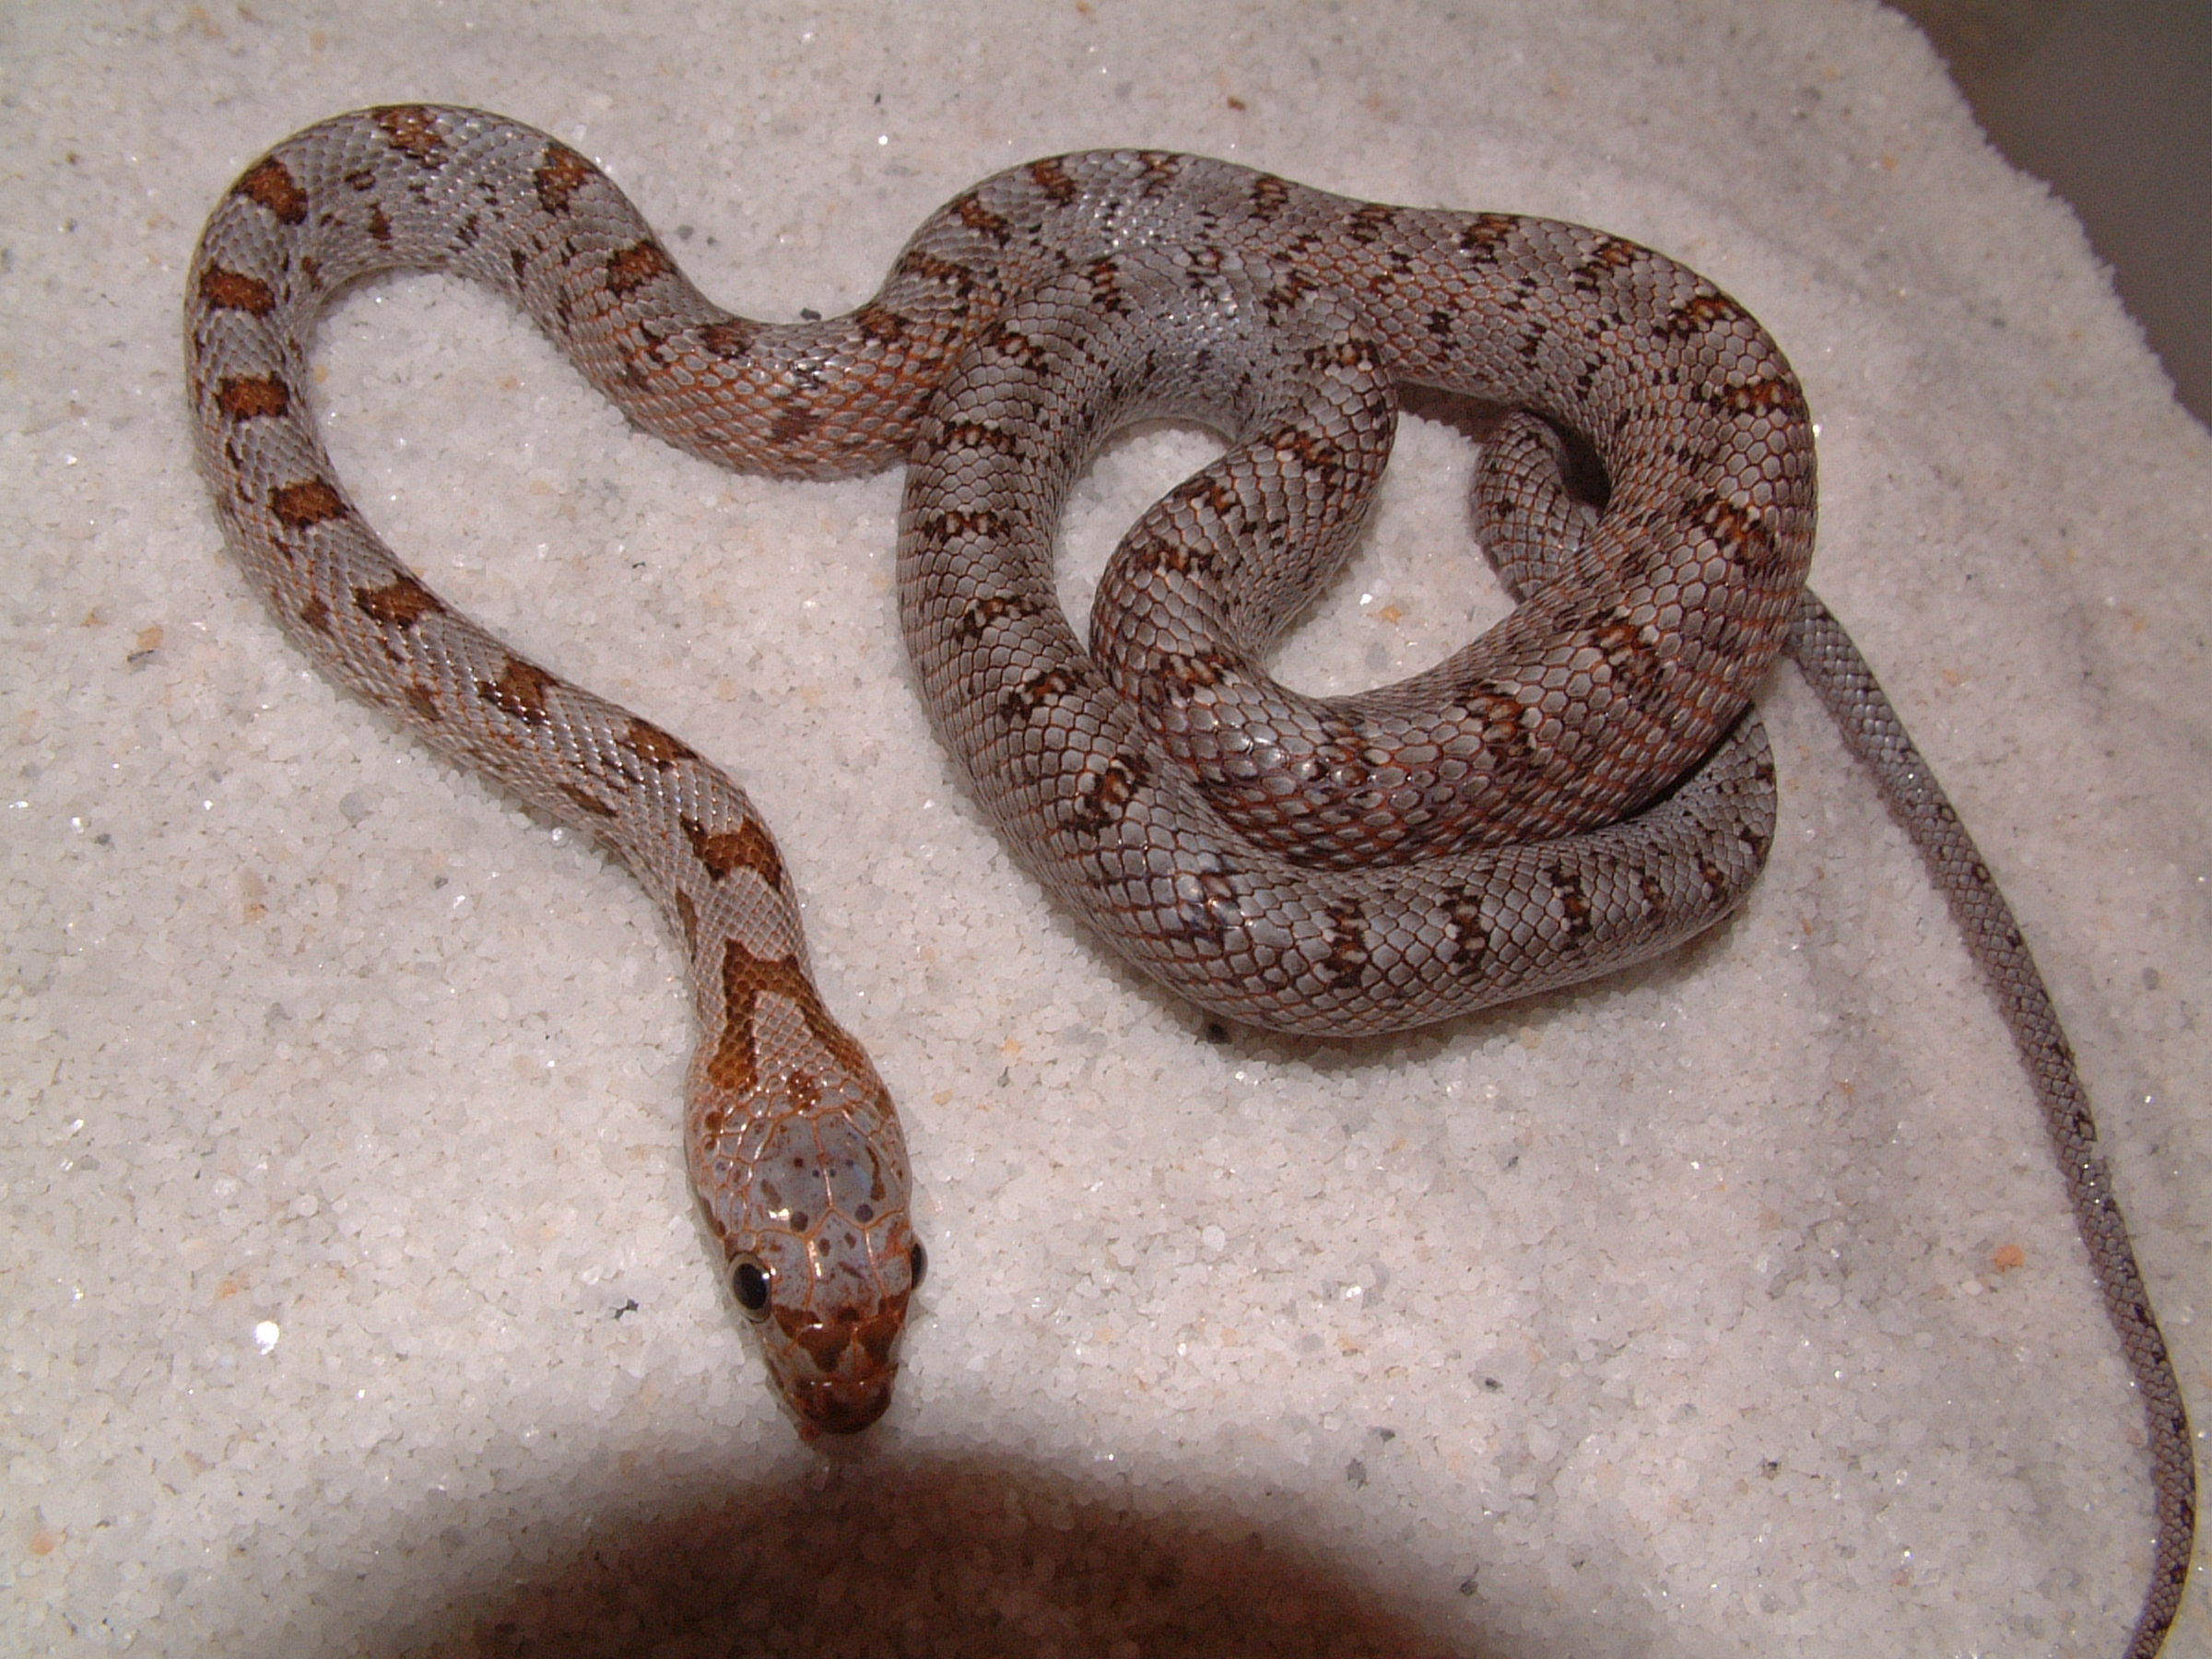 Pictures of rat snakes